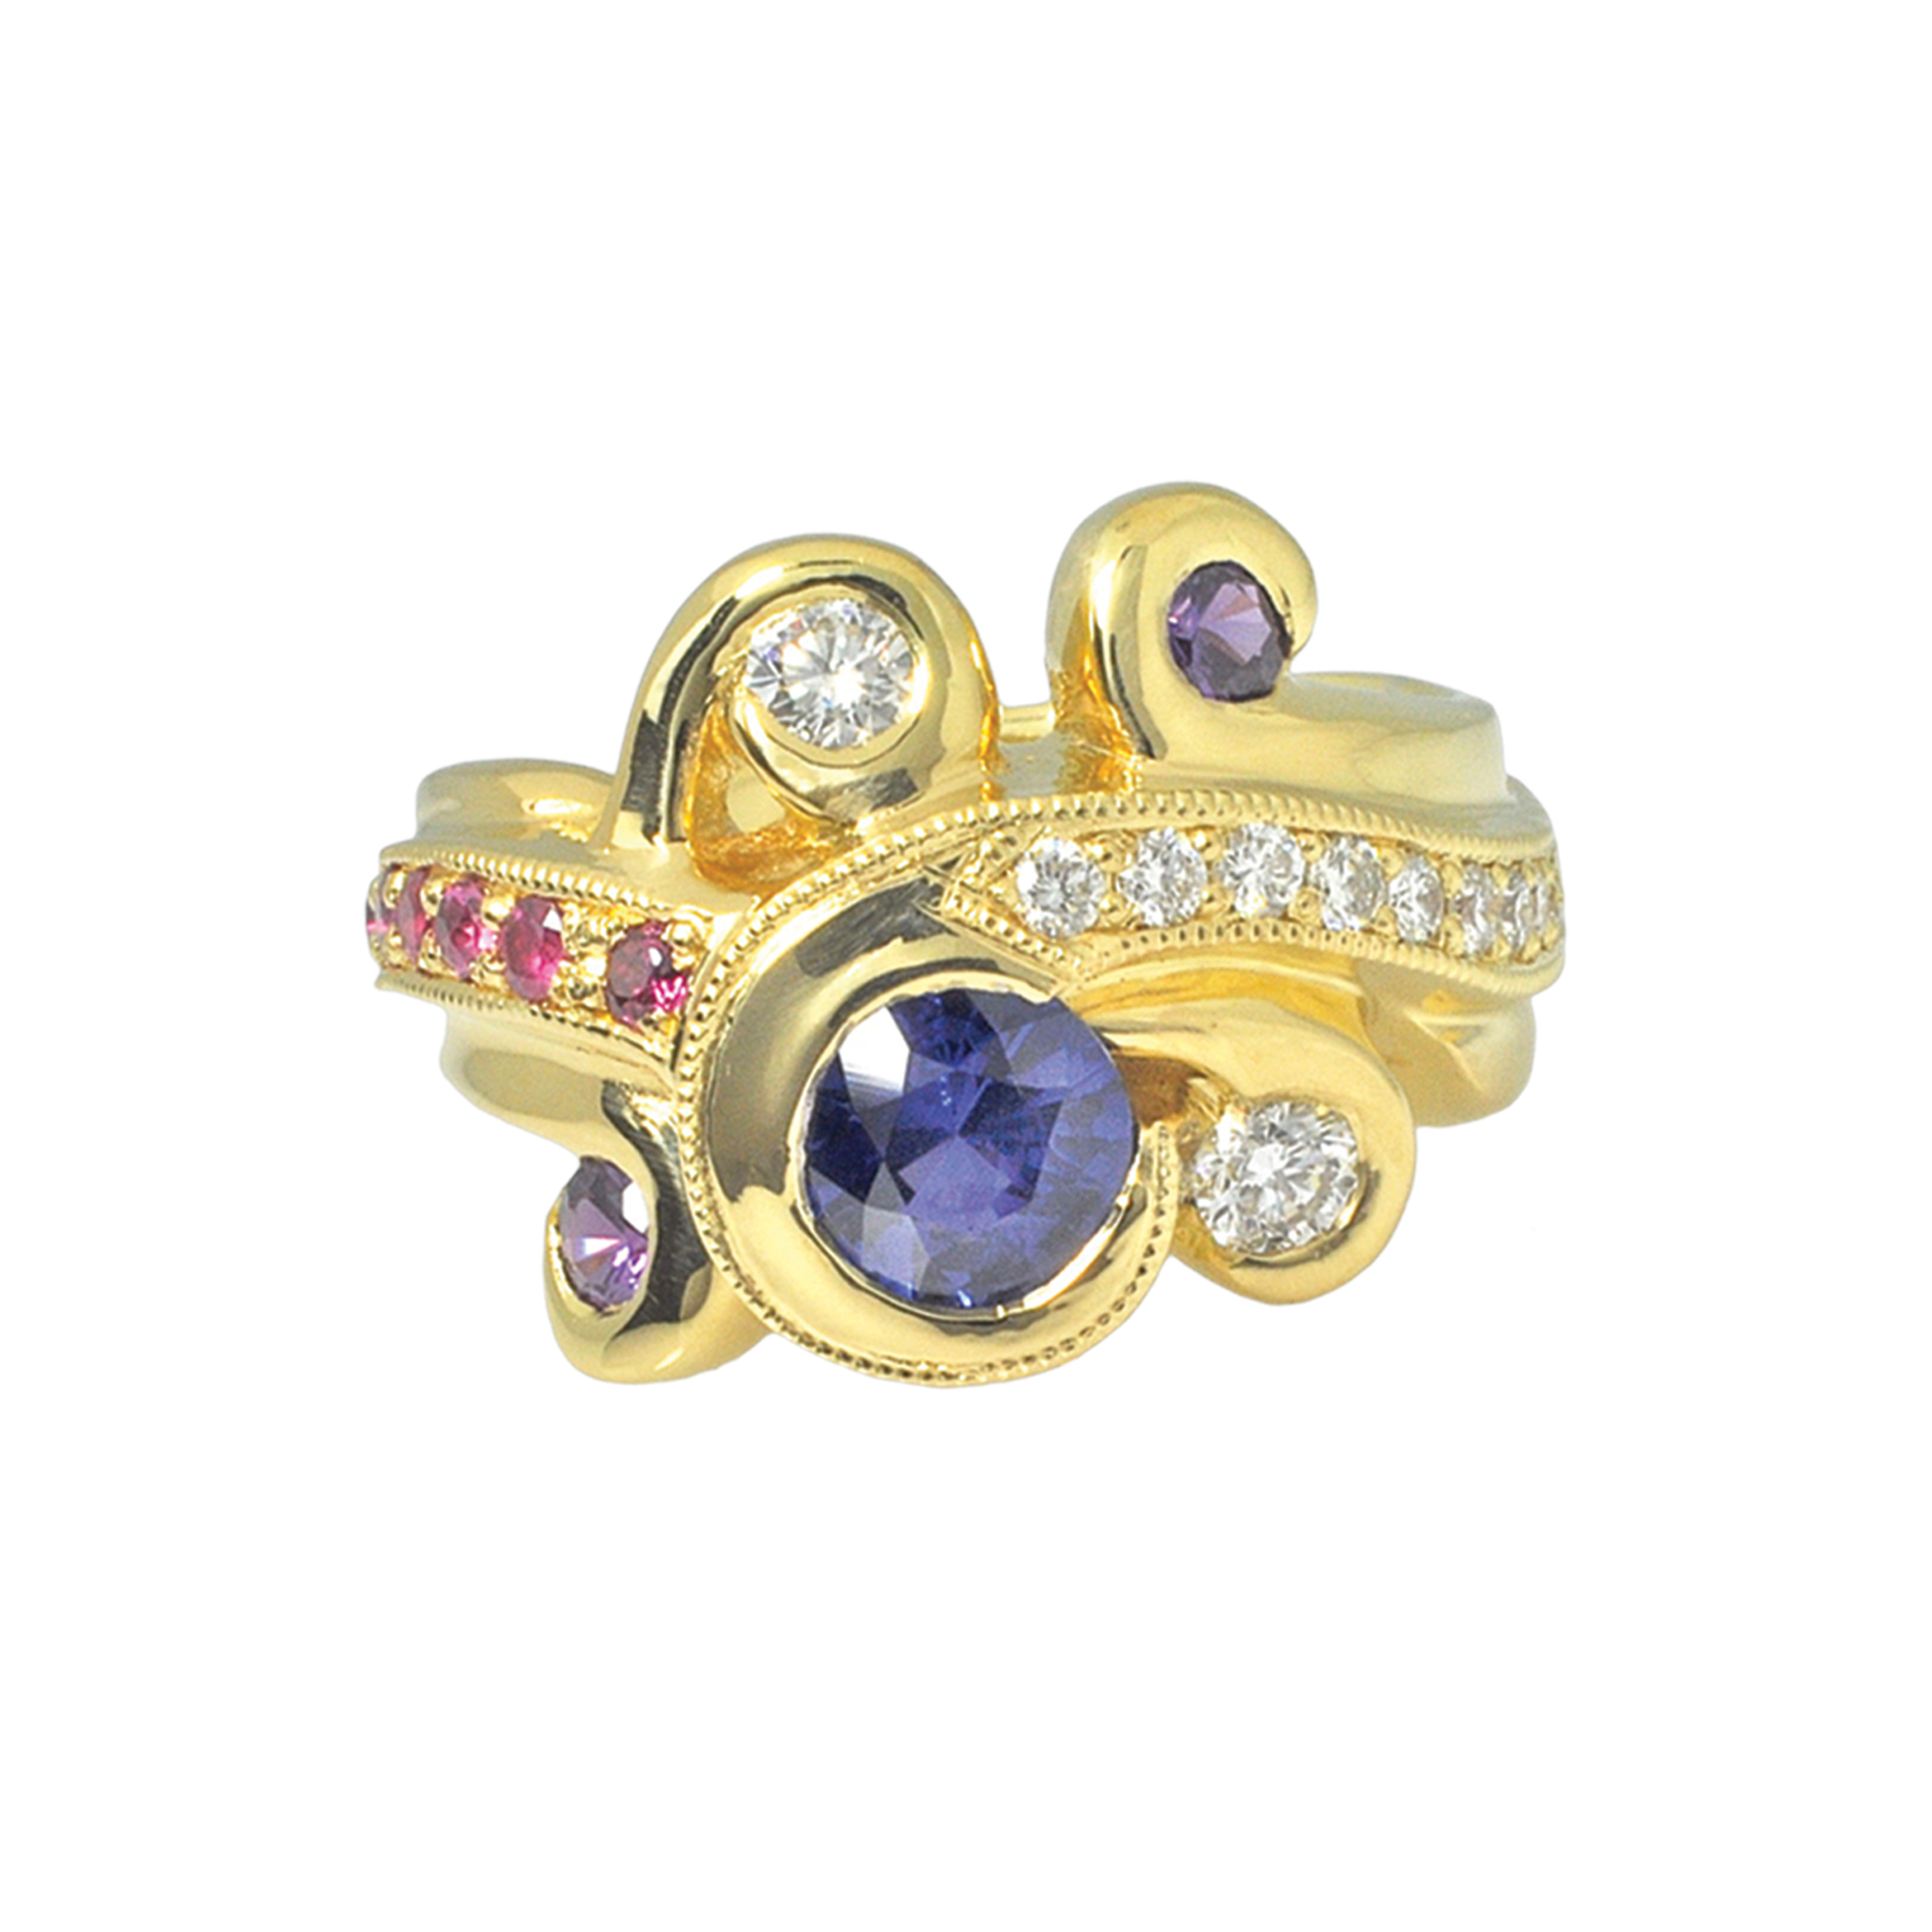 18k Gold Ring with Blue, Purple and Pink Sapphires and Diamonds by Waylon Rhoads Jewelry